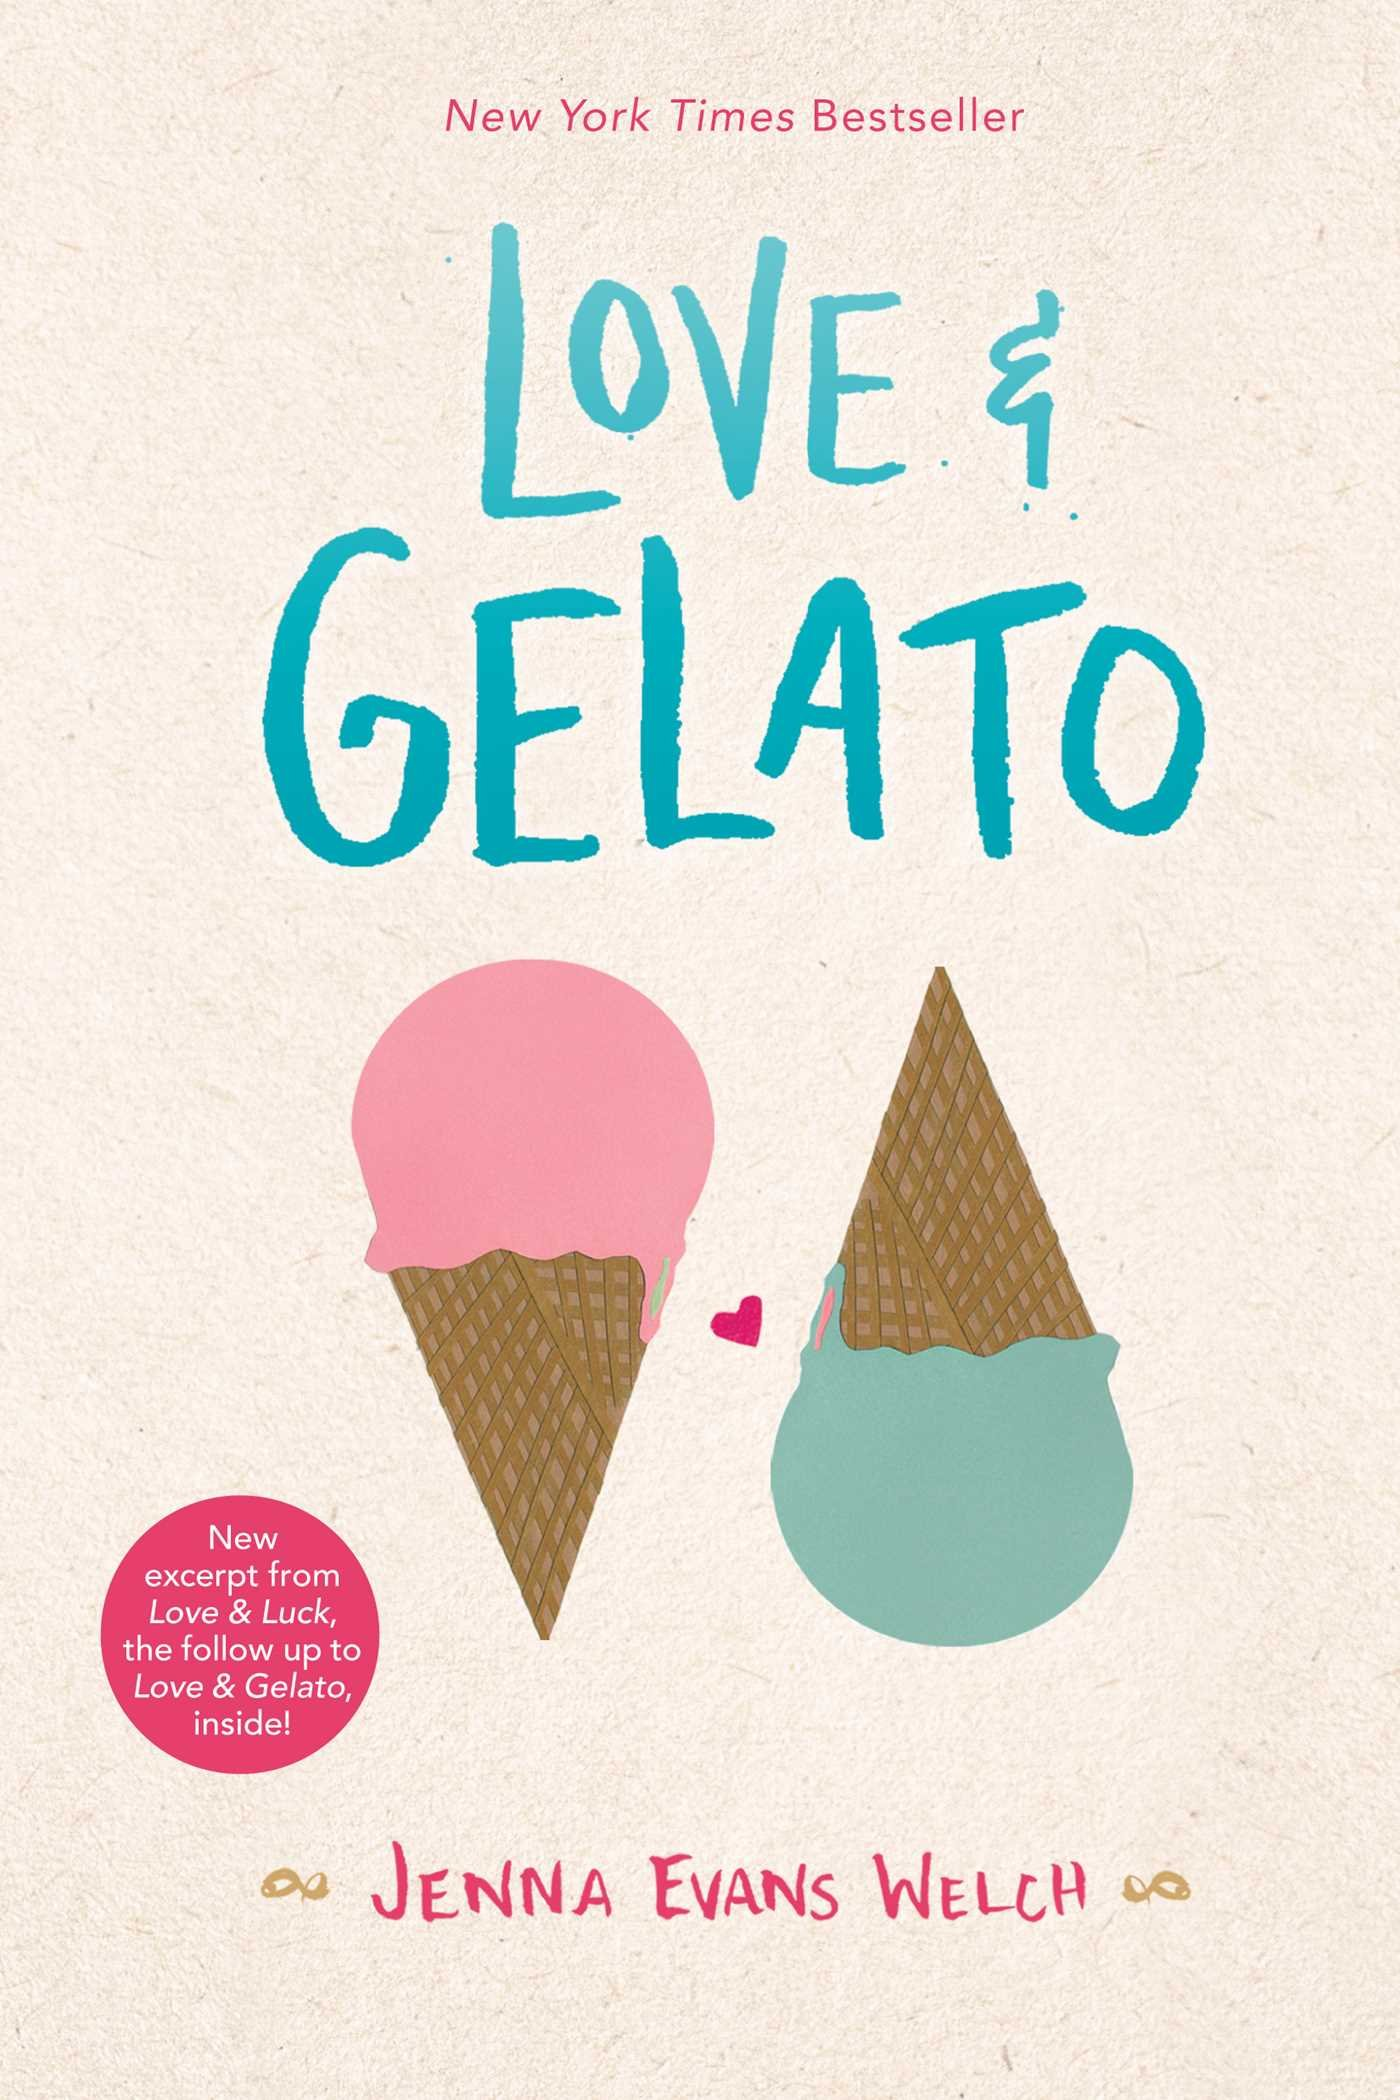 Amazon.com: Love & Gelato (9781481432559): Welch, Jenna Evans: Books